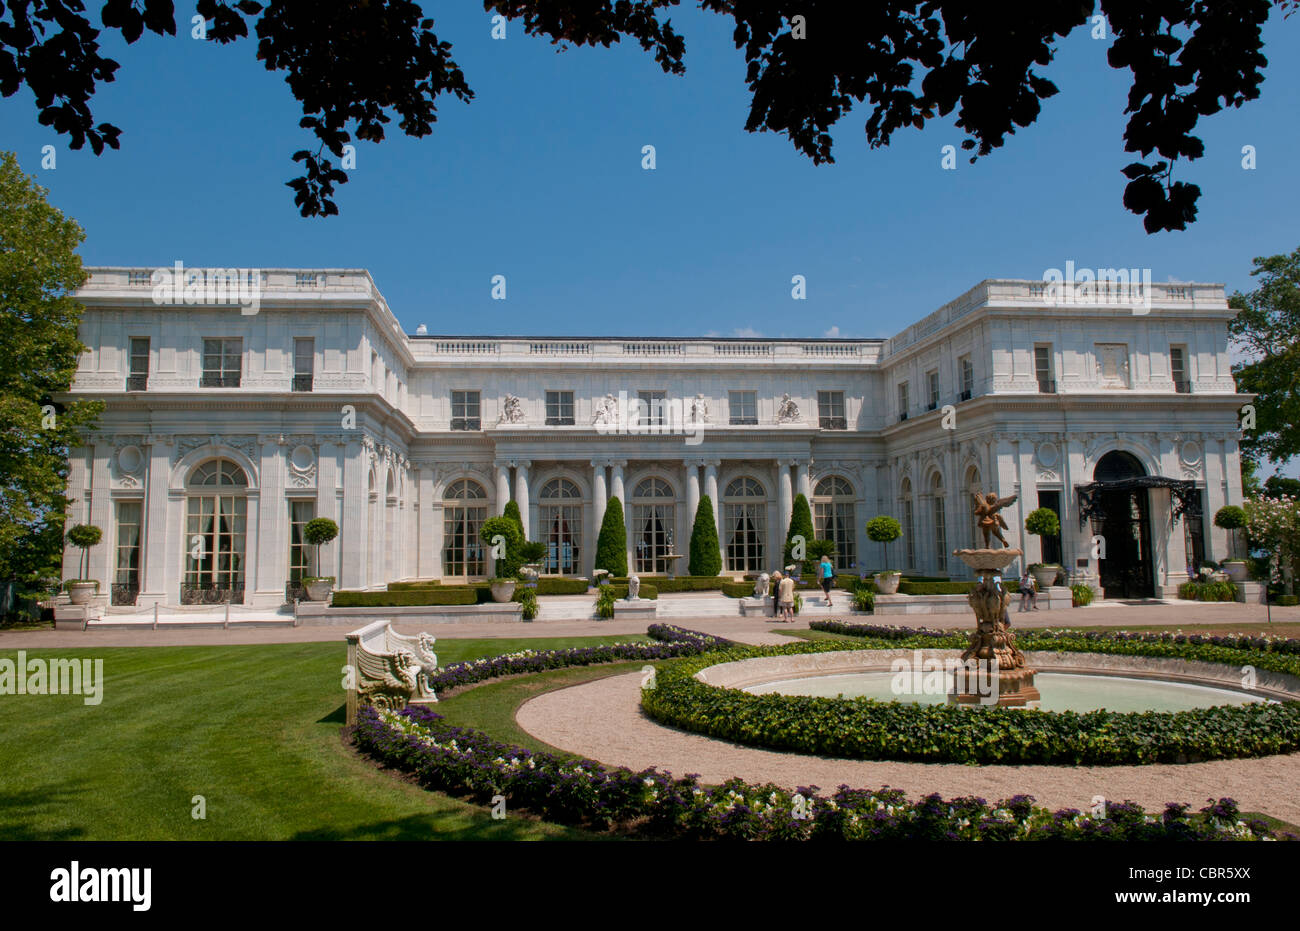 Newport Rhode Island Famous Rosemont Mansion On The Mansions Drive